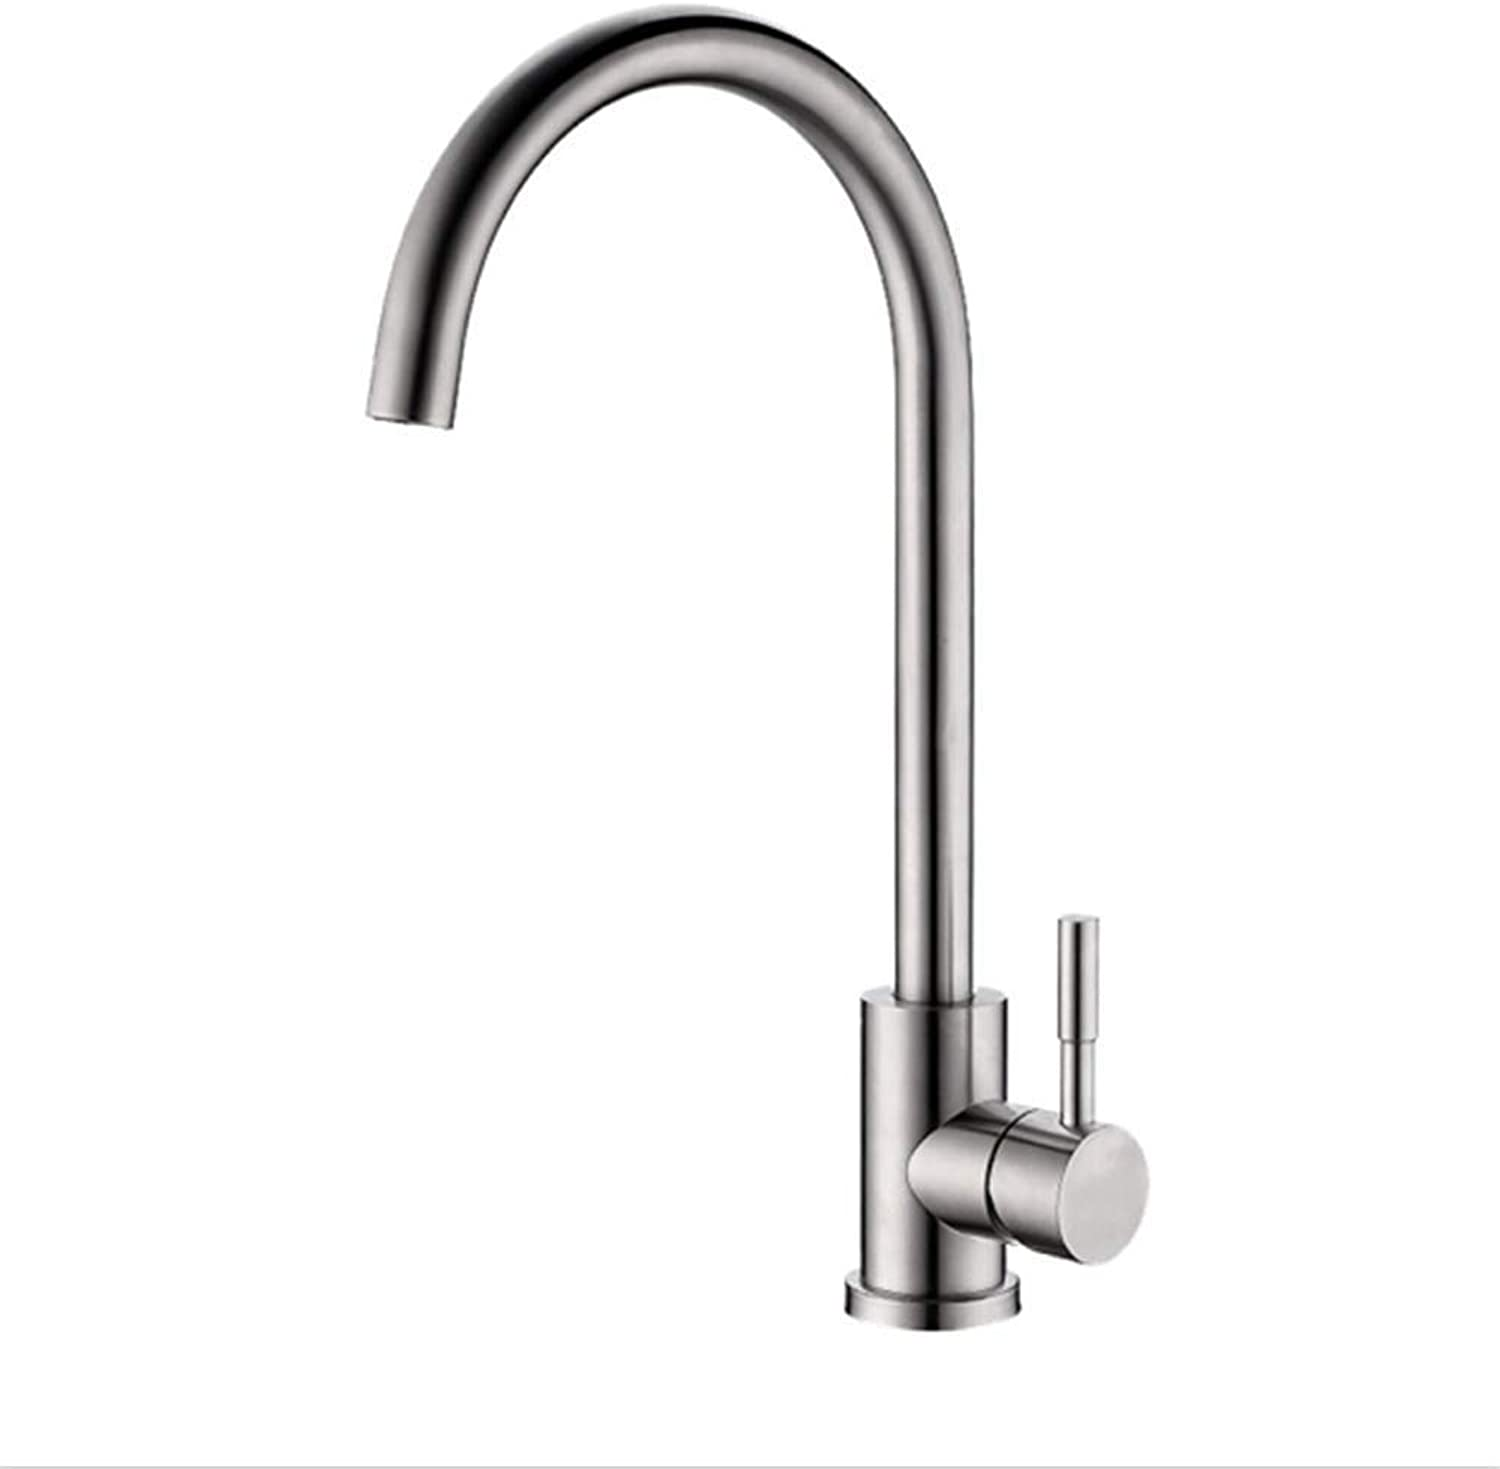 Water Tap Kitchen Taps Faucet Modern Kitchen Sink Taps Stainless Steelkitchen Faucet Stainless Steel Main Body Wash Dish Basin Cold and Hot Water Faucet redary Sink Faucet